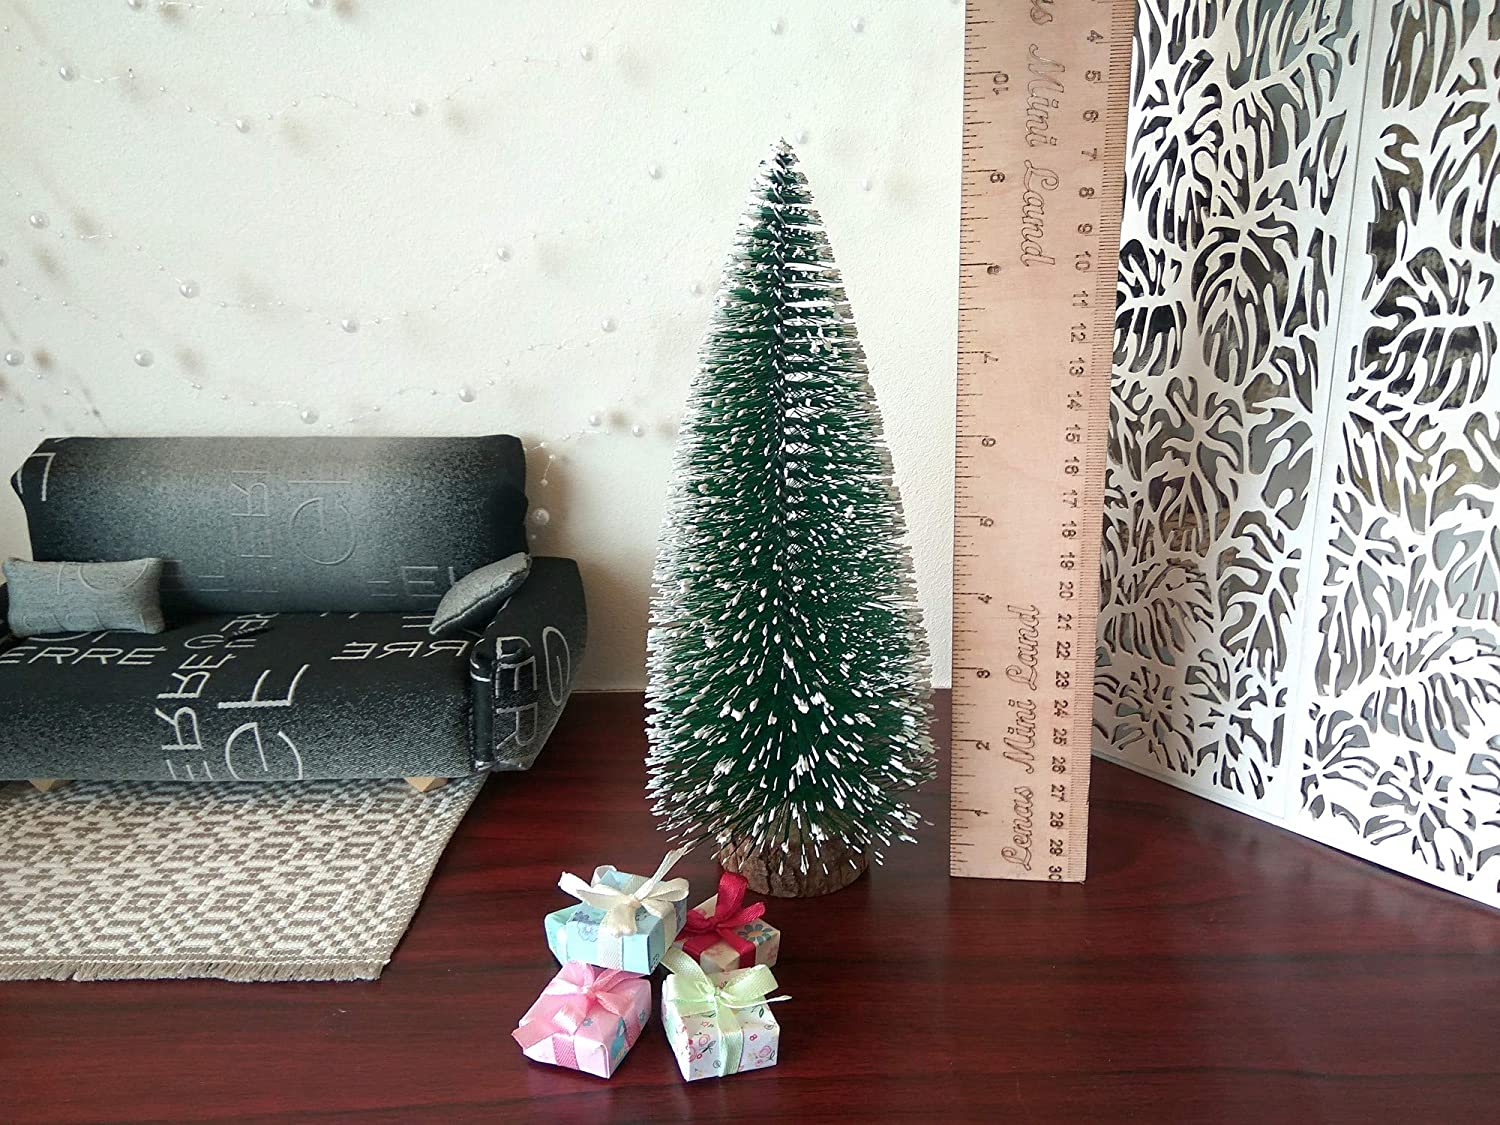 Miniature Christmas Tree with 4 Presents Dollhouse Xmas 1:6 scale Decoration